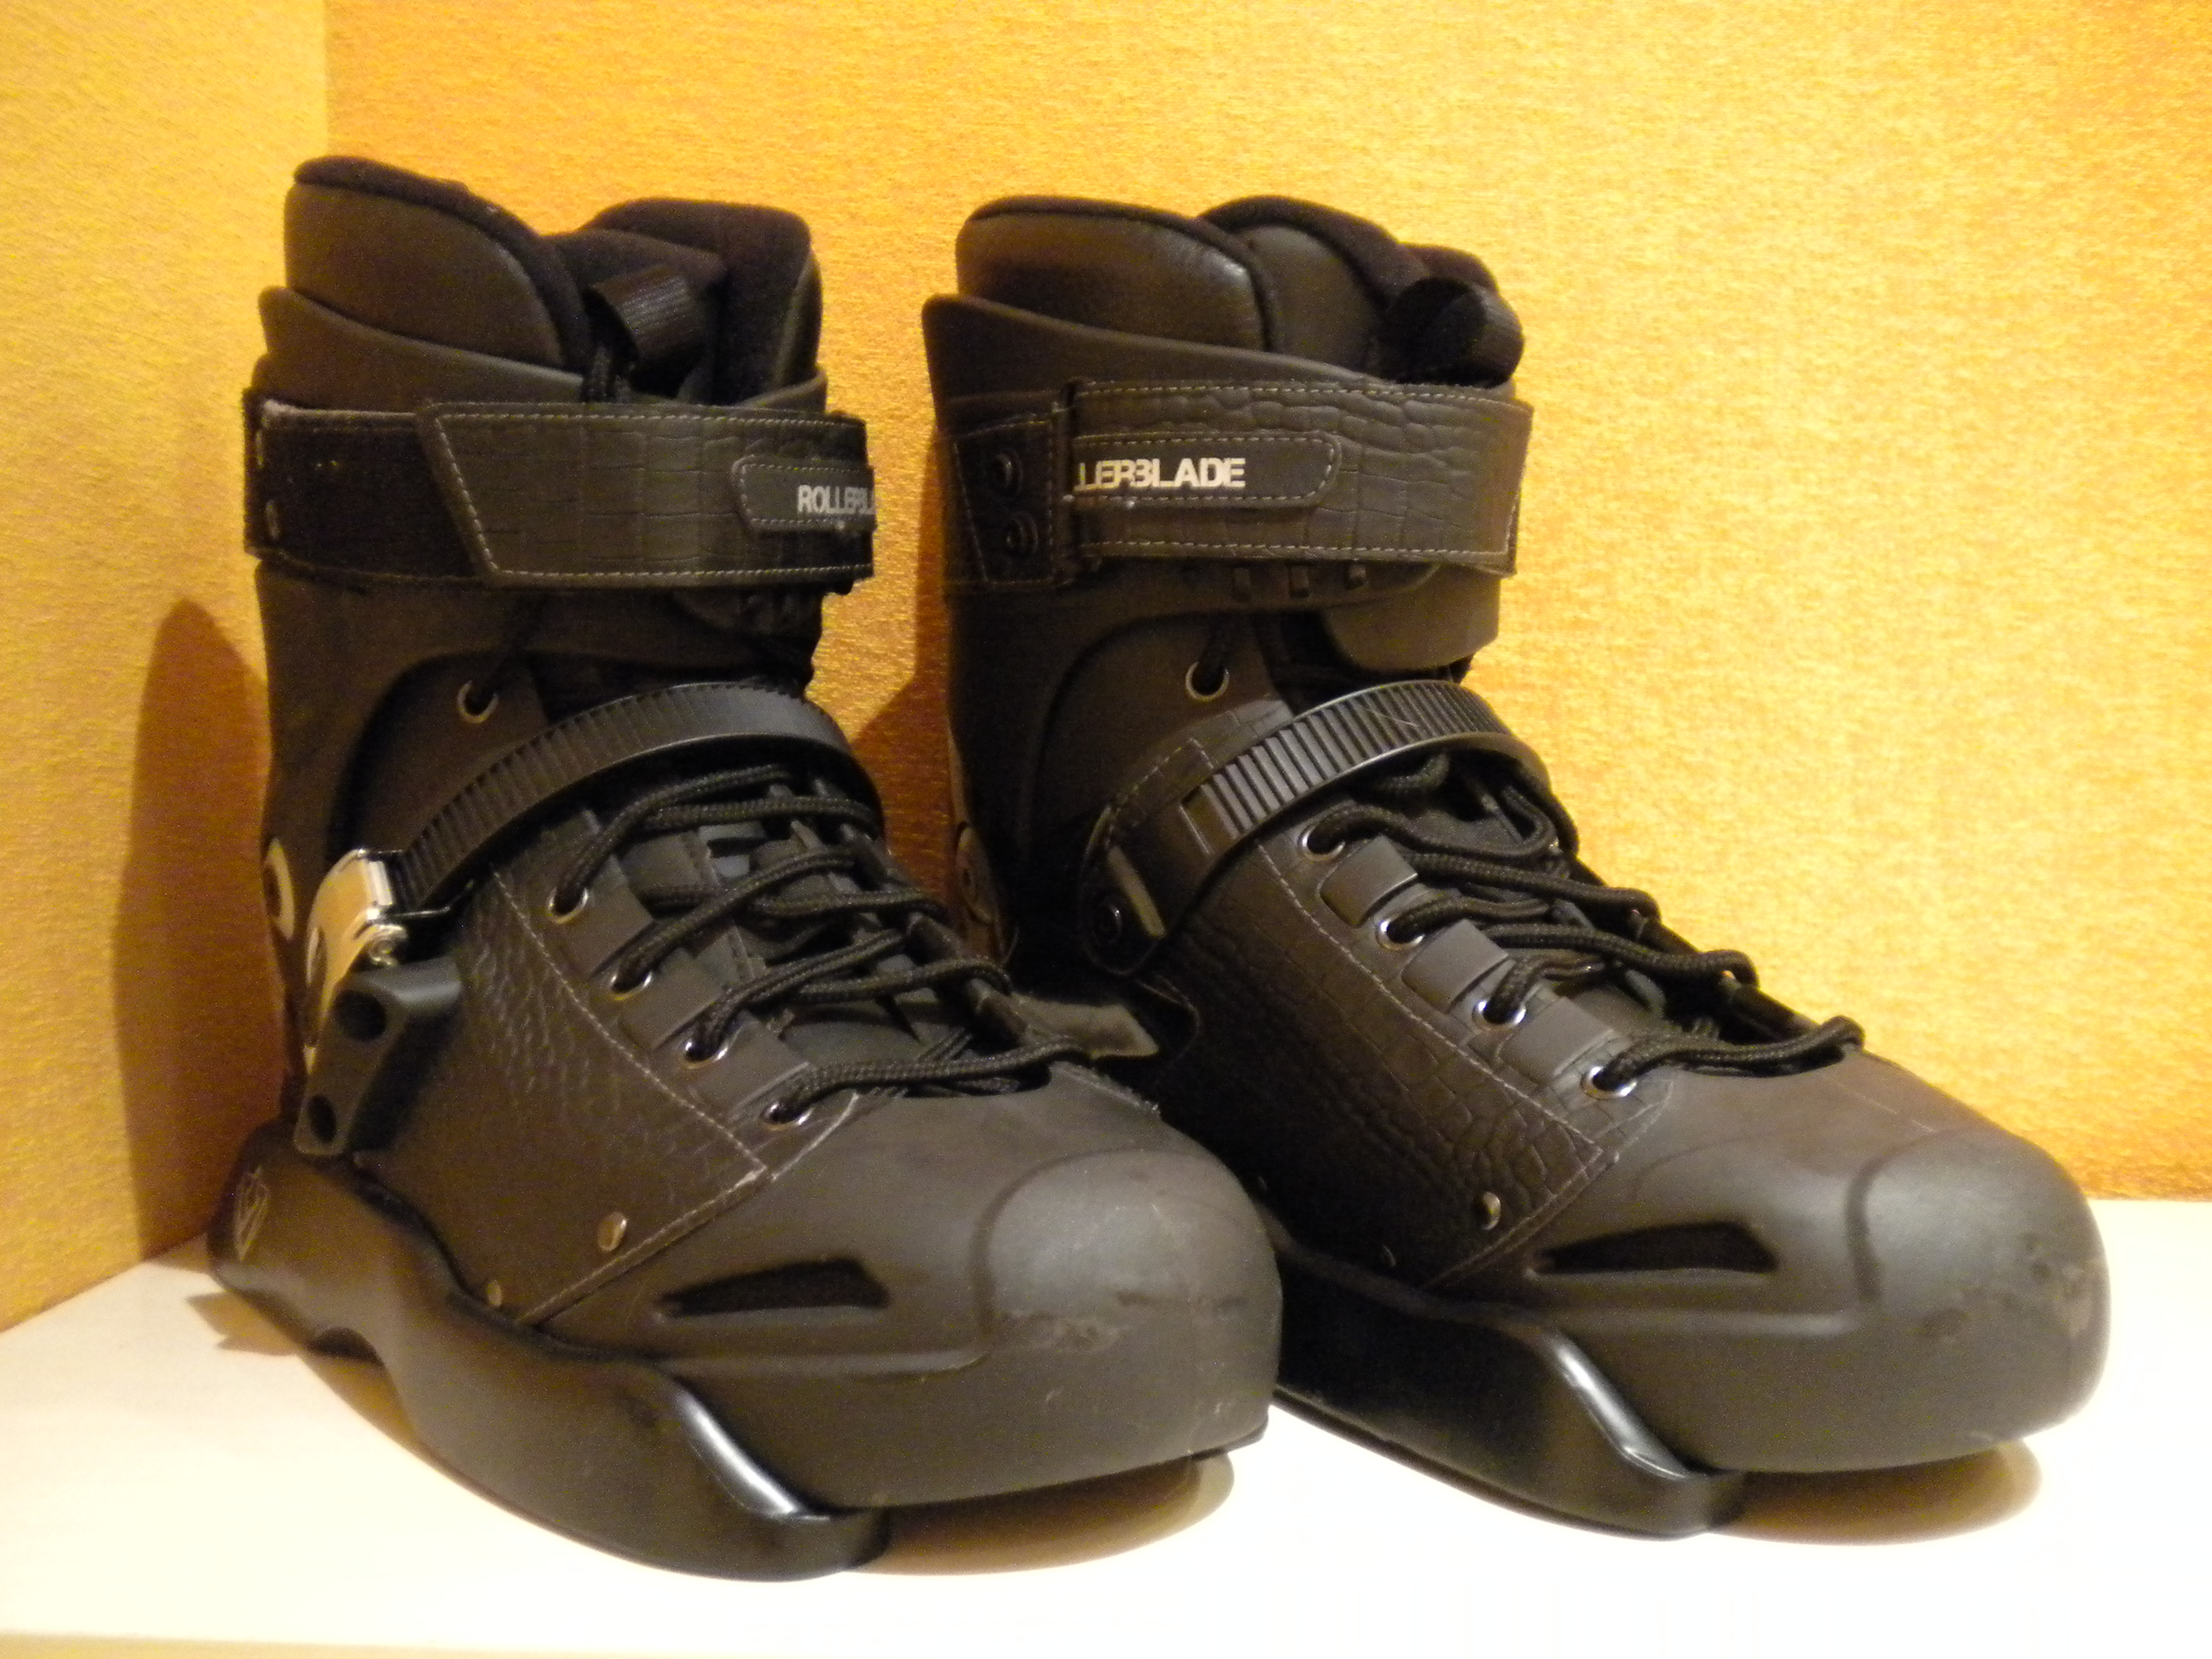 Rollerblade Solo Estilo 2 boot only